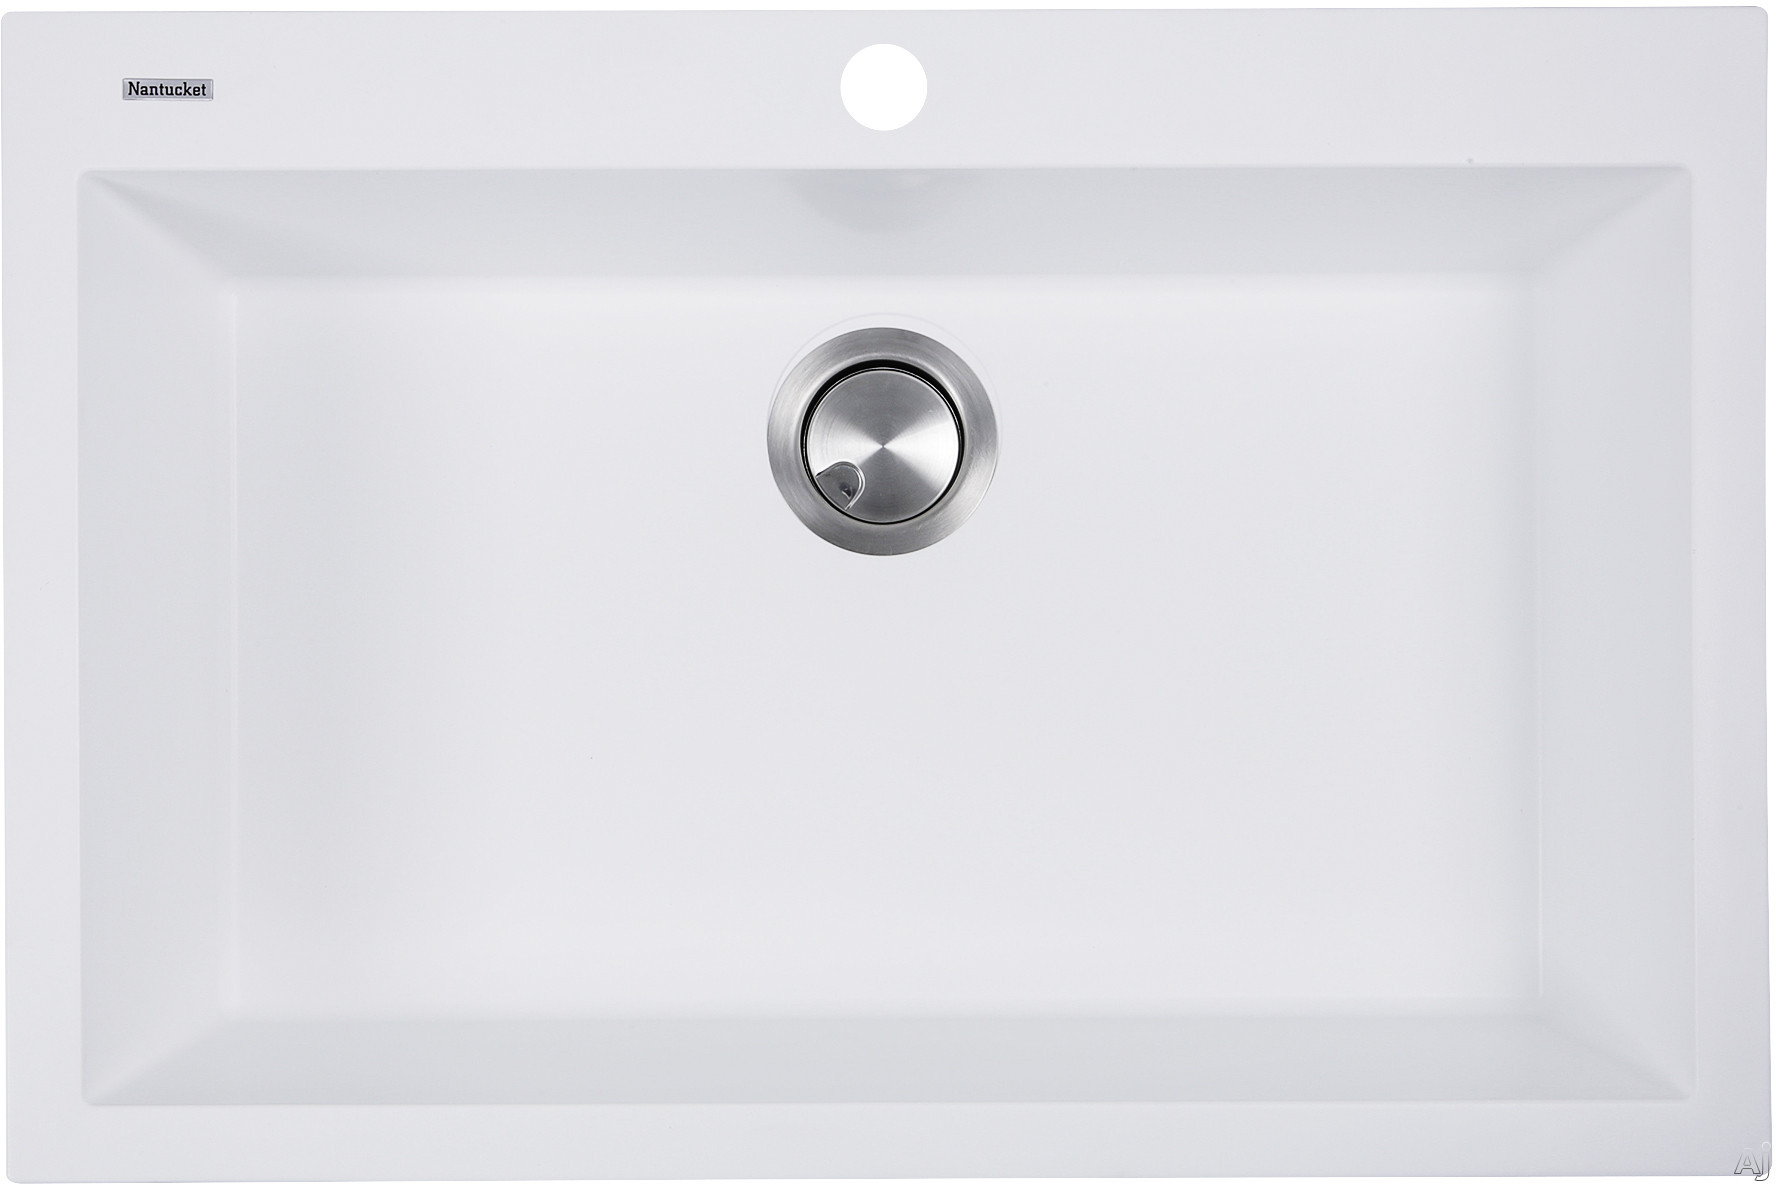 Nantucket Sinks Plymouth Collection PR3020DMW 30 Inch Dual Mount Granite Composite Kitchen Sink with Dual Mount Design, Heat Resistant and Scratch Resistant: Matte White